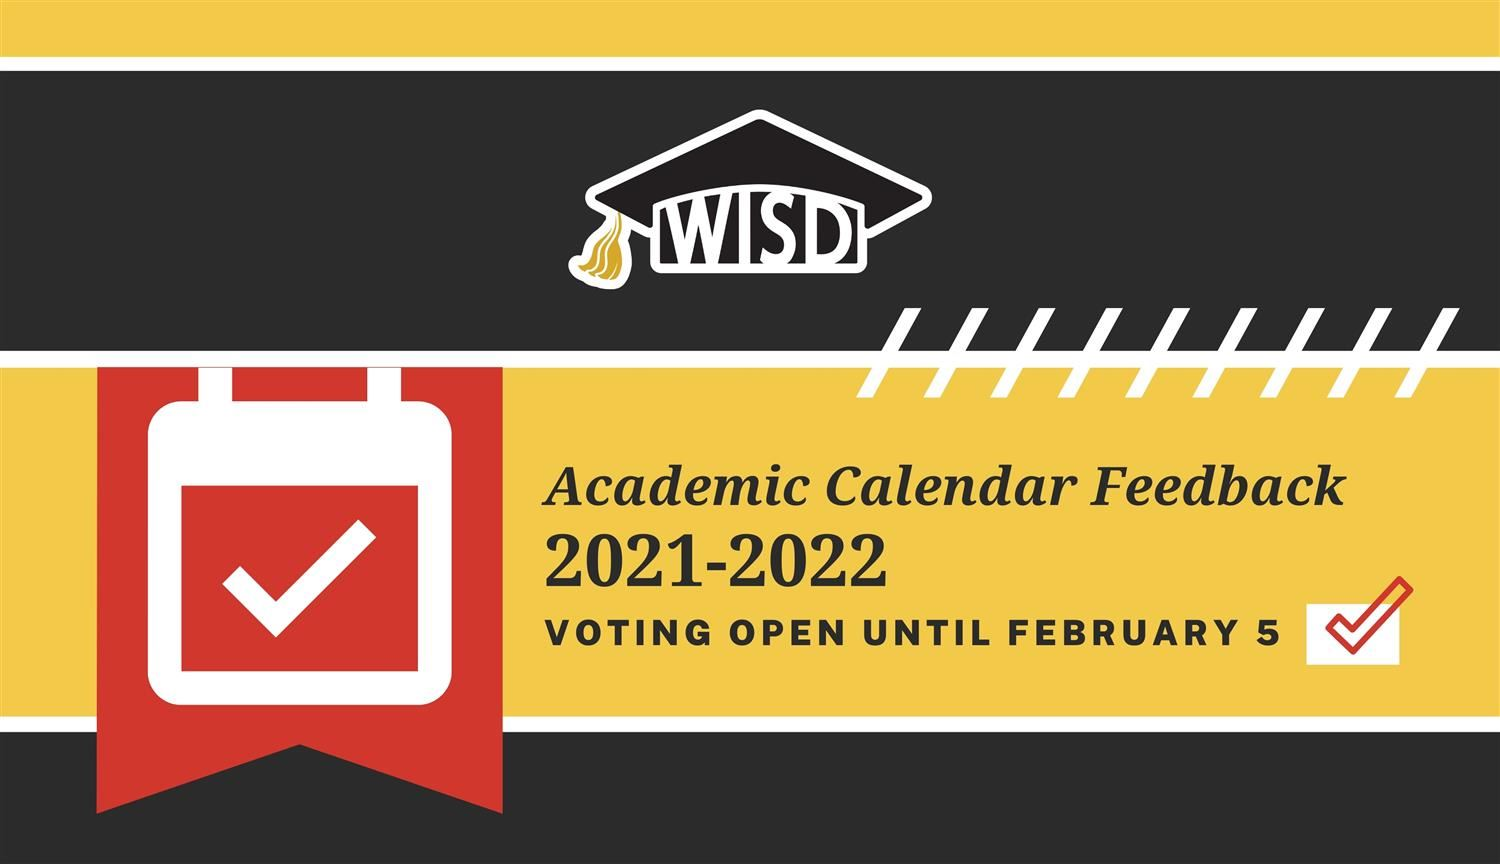 2021-2022 calendar voting open until Feb 5